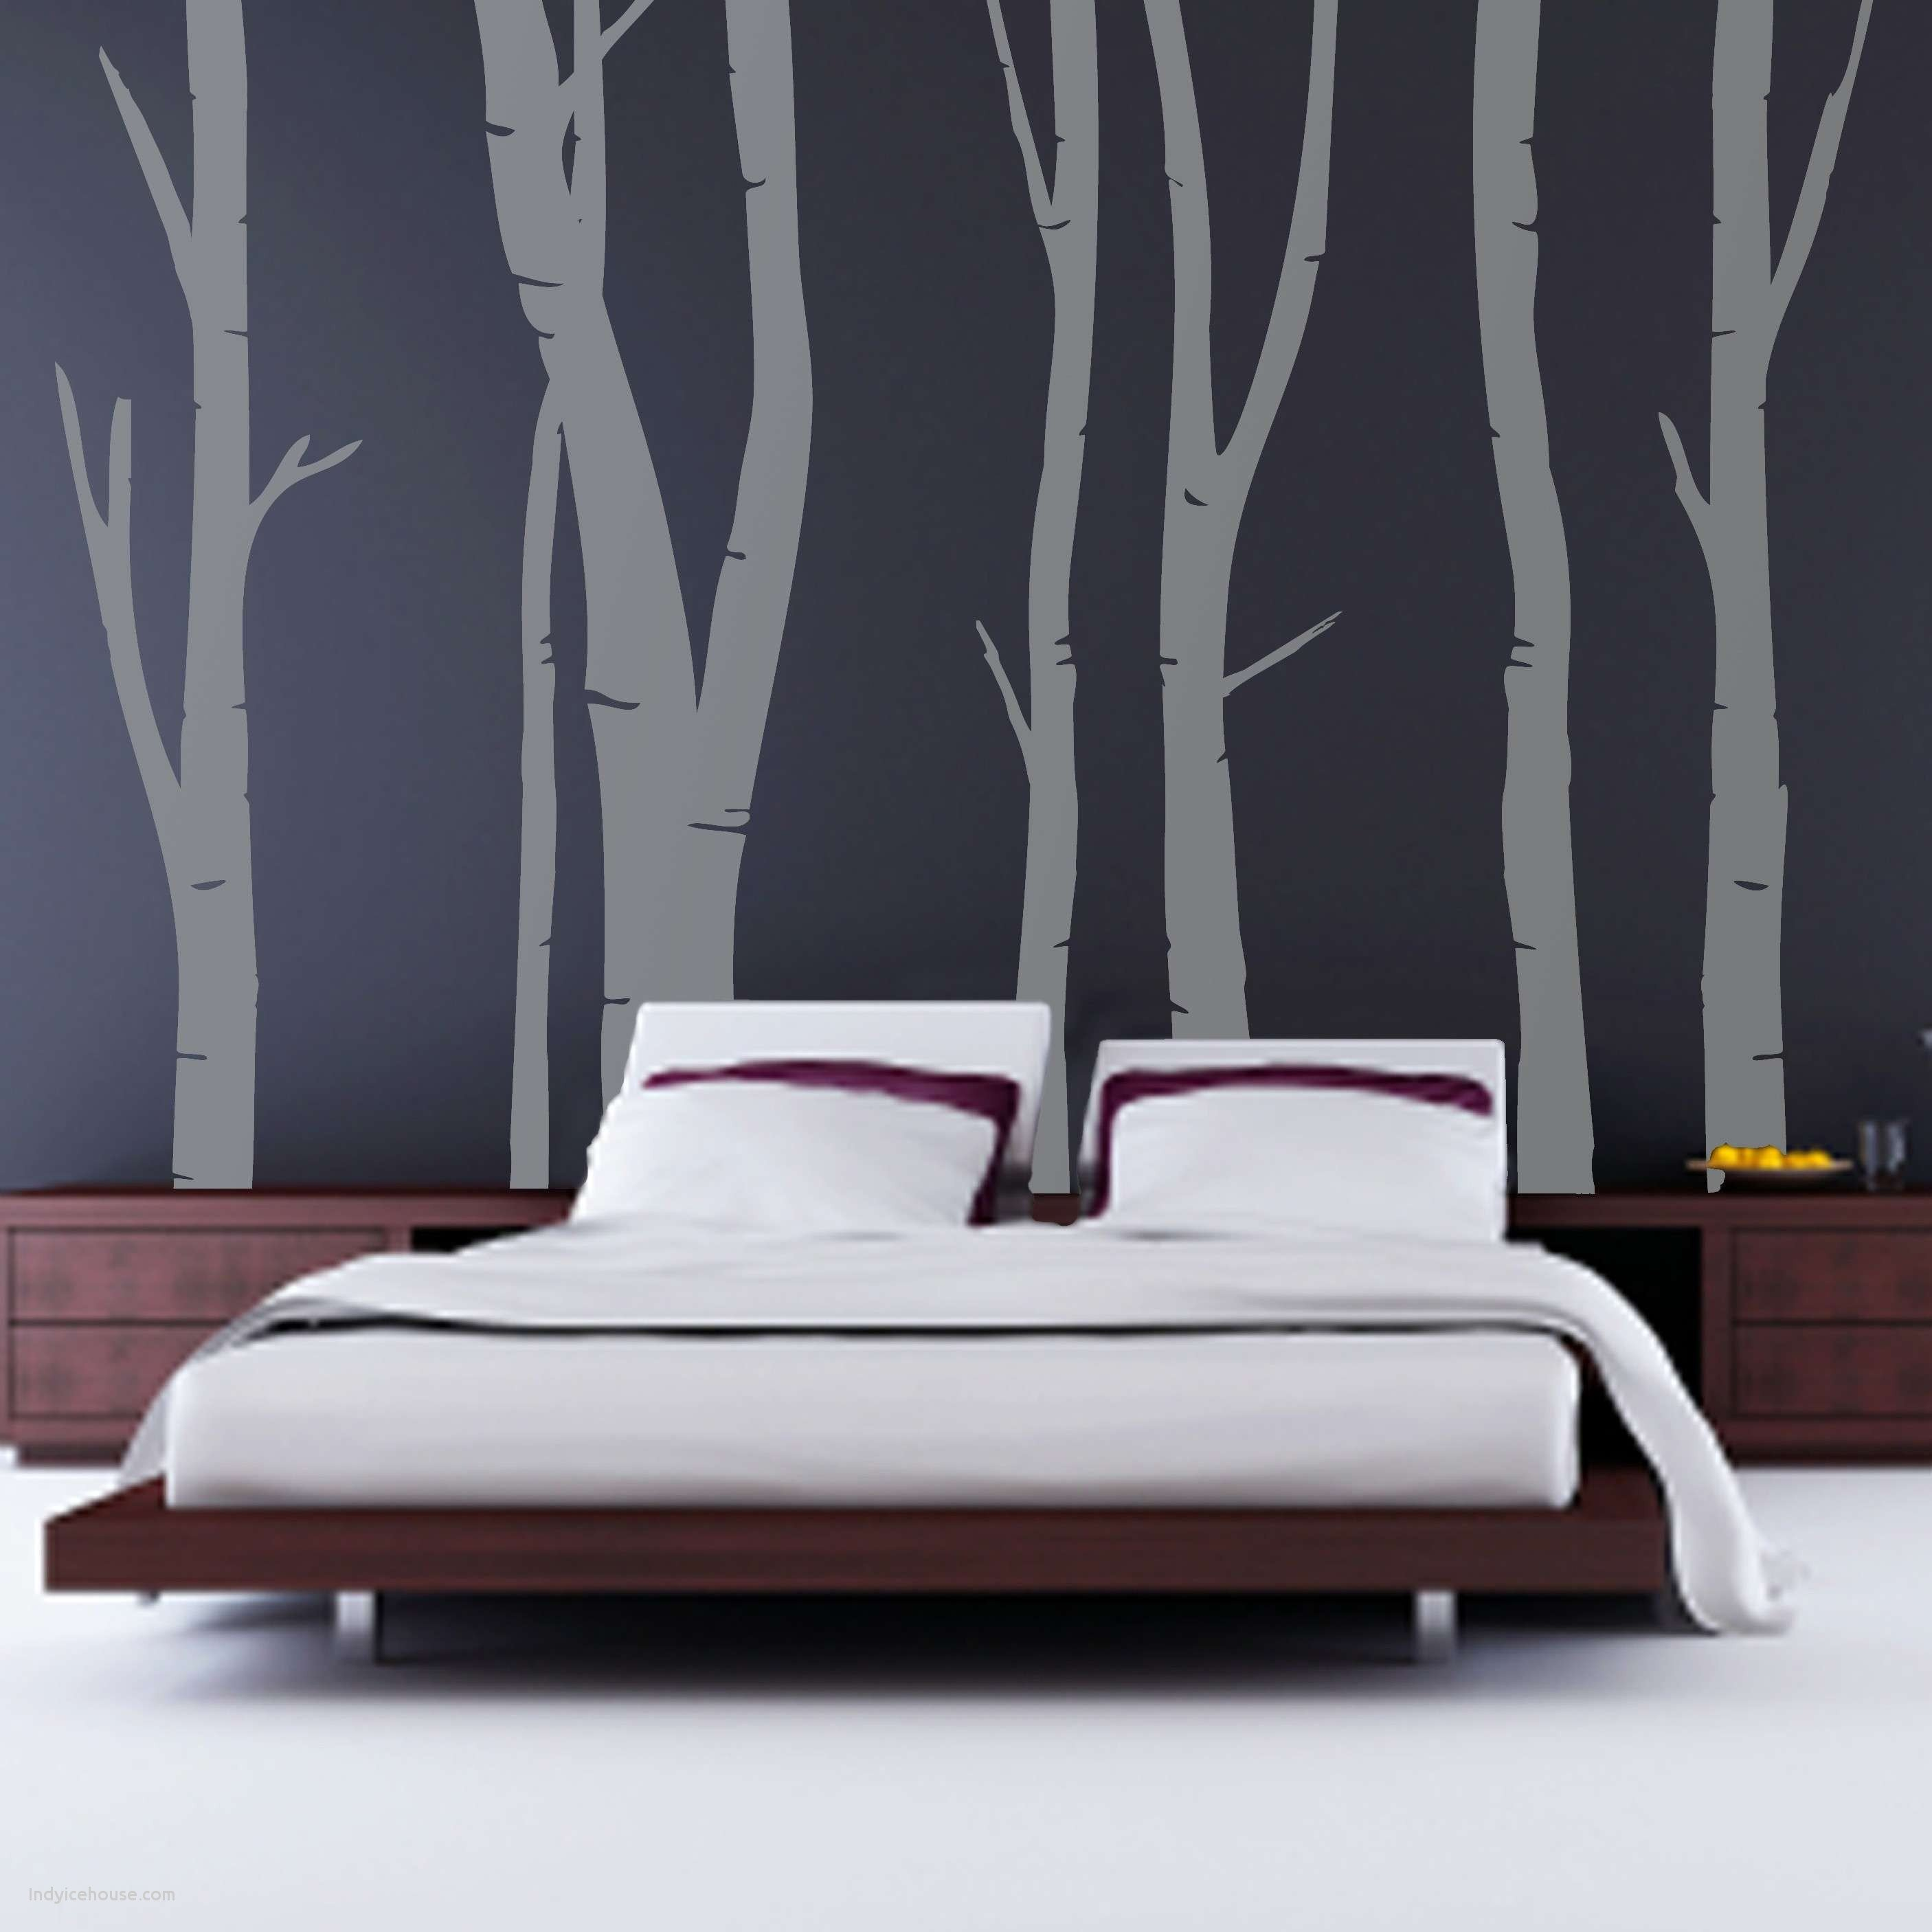 Black White and Gray Bedroom Luxury 17 Red Black White Wall Art Kunuzmetals